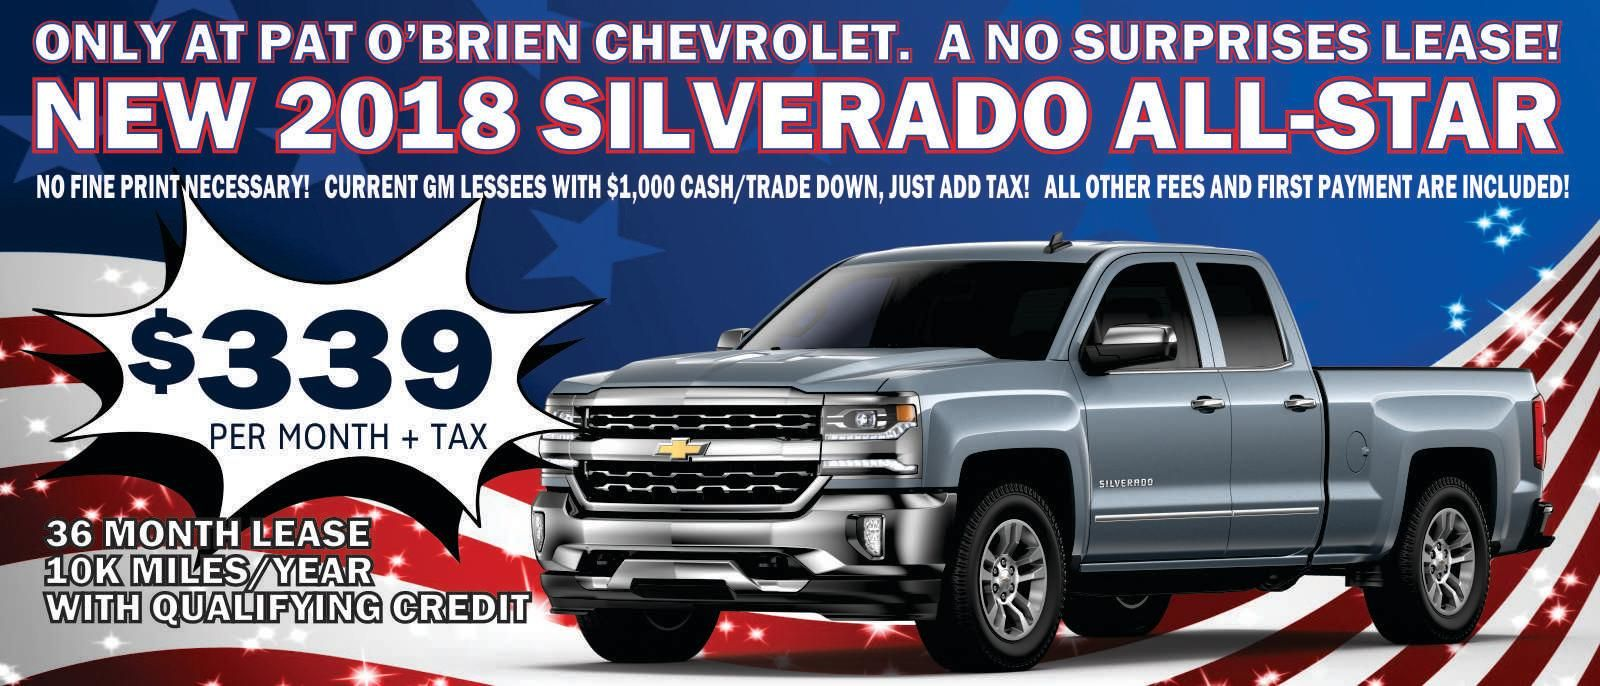 Pat O Brien Chevy >> Pat O Brien Chevrolet East In Willoughby Hills Serves